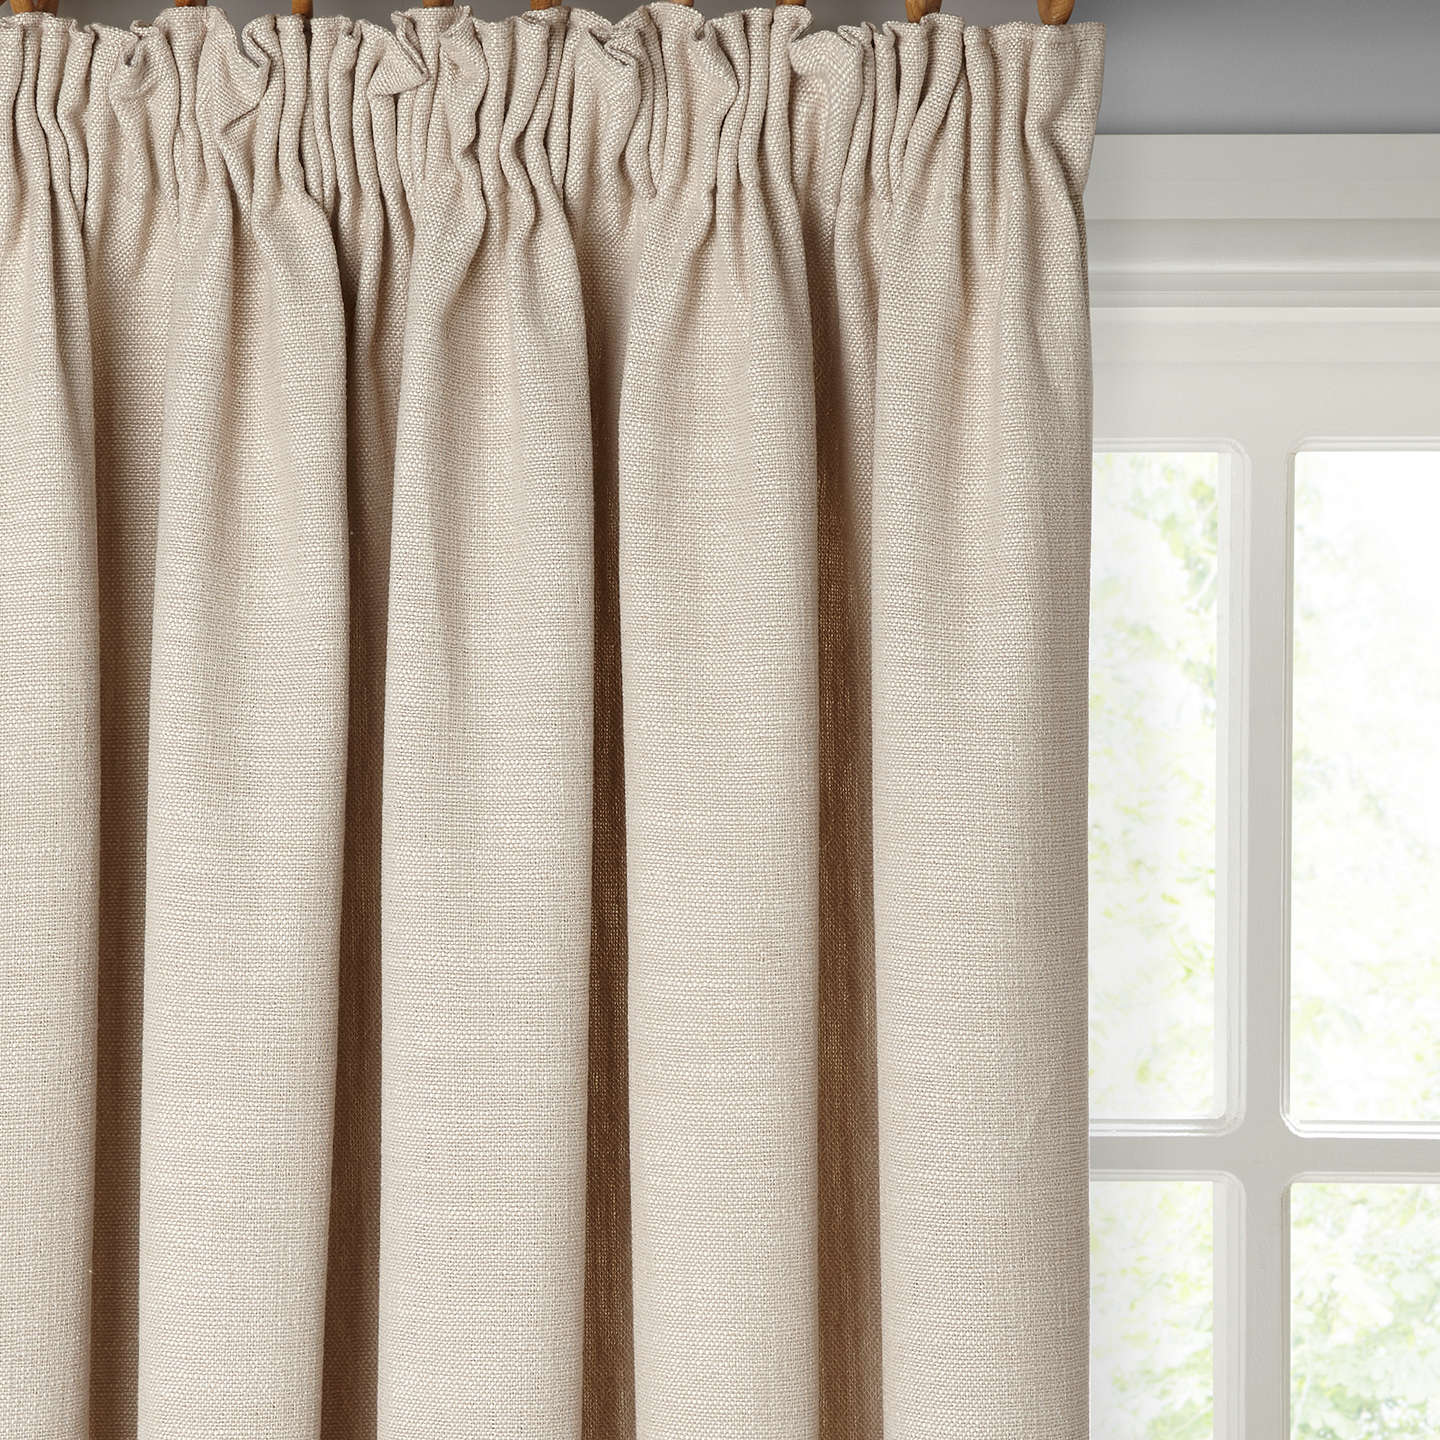 BuyCroft Collection Skye Pair Lined Pencil Pleat Curtains, Putty, W167 x Drop 137cm Online at johnlewis.com